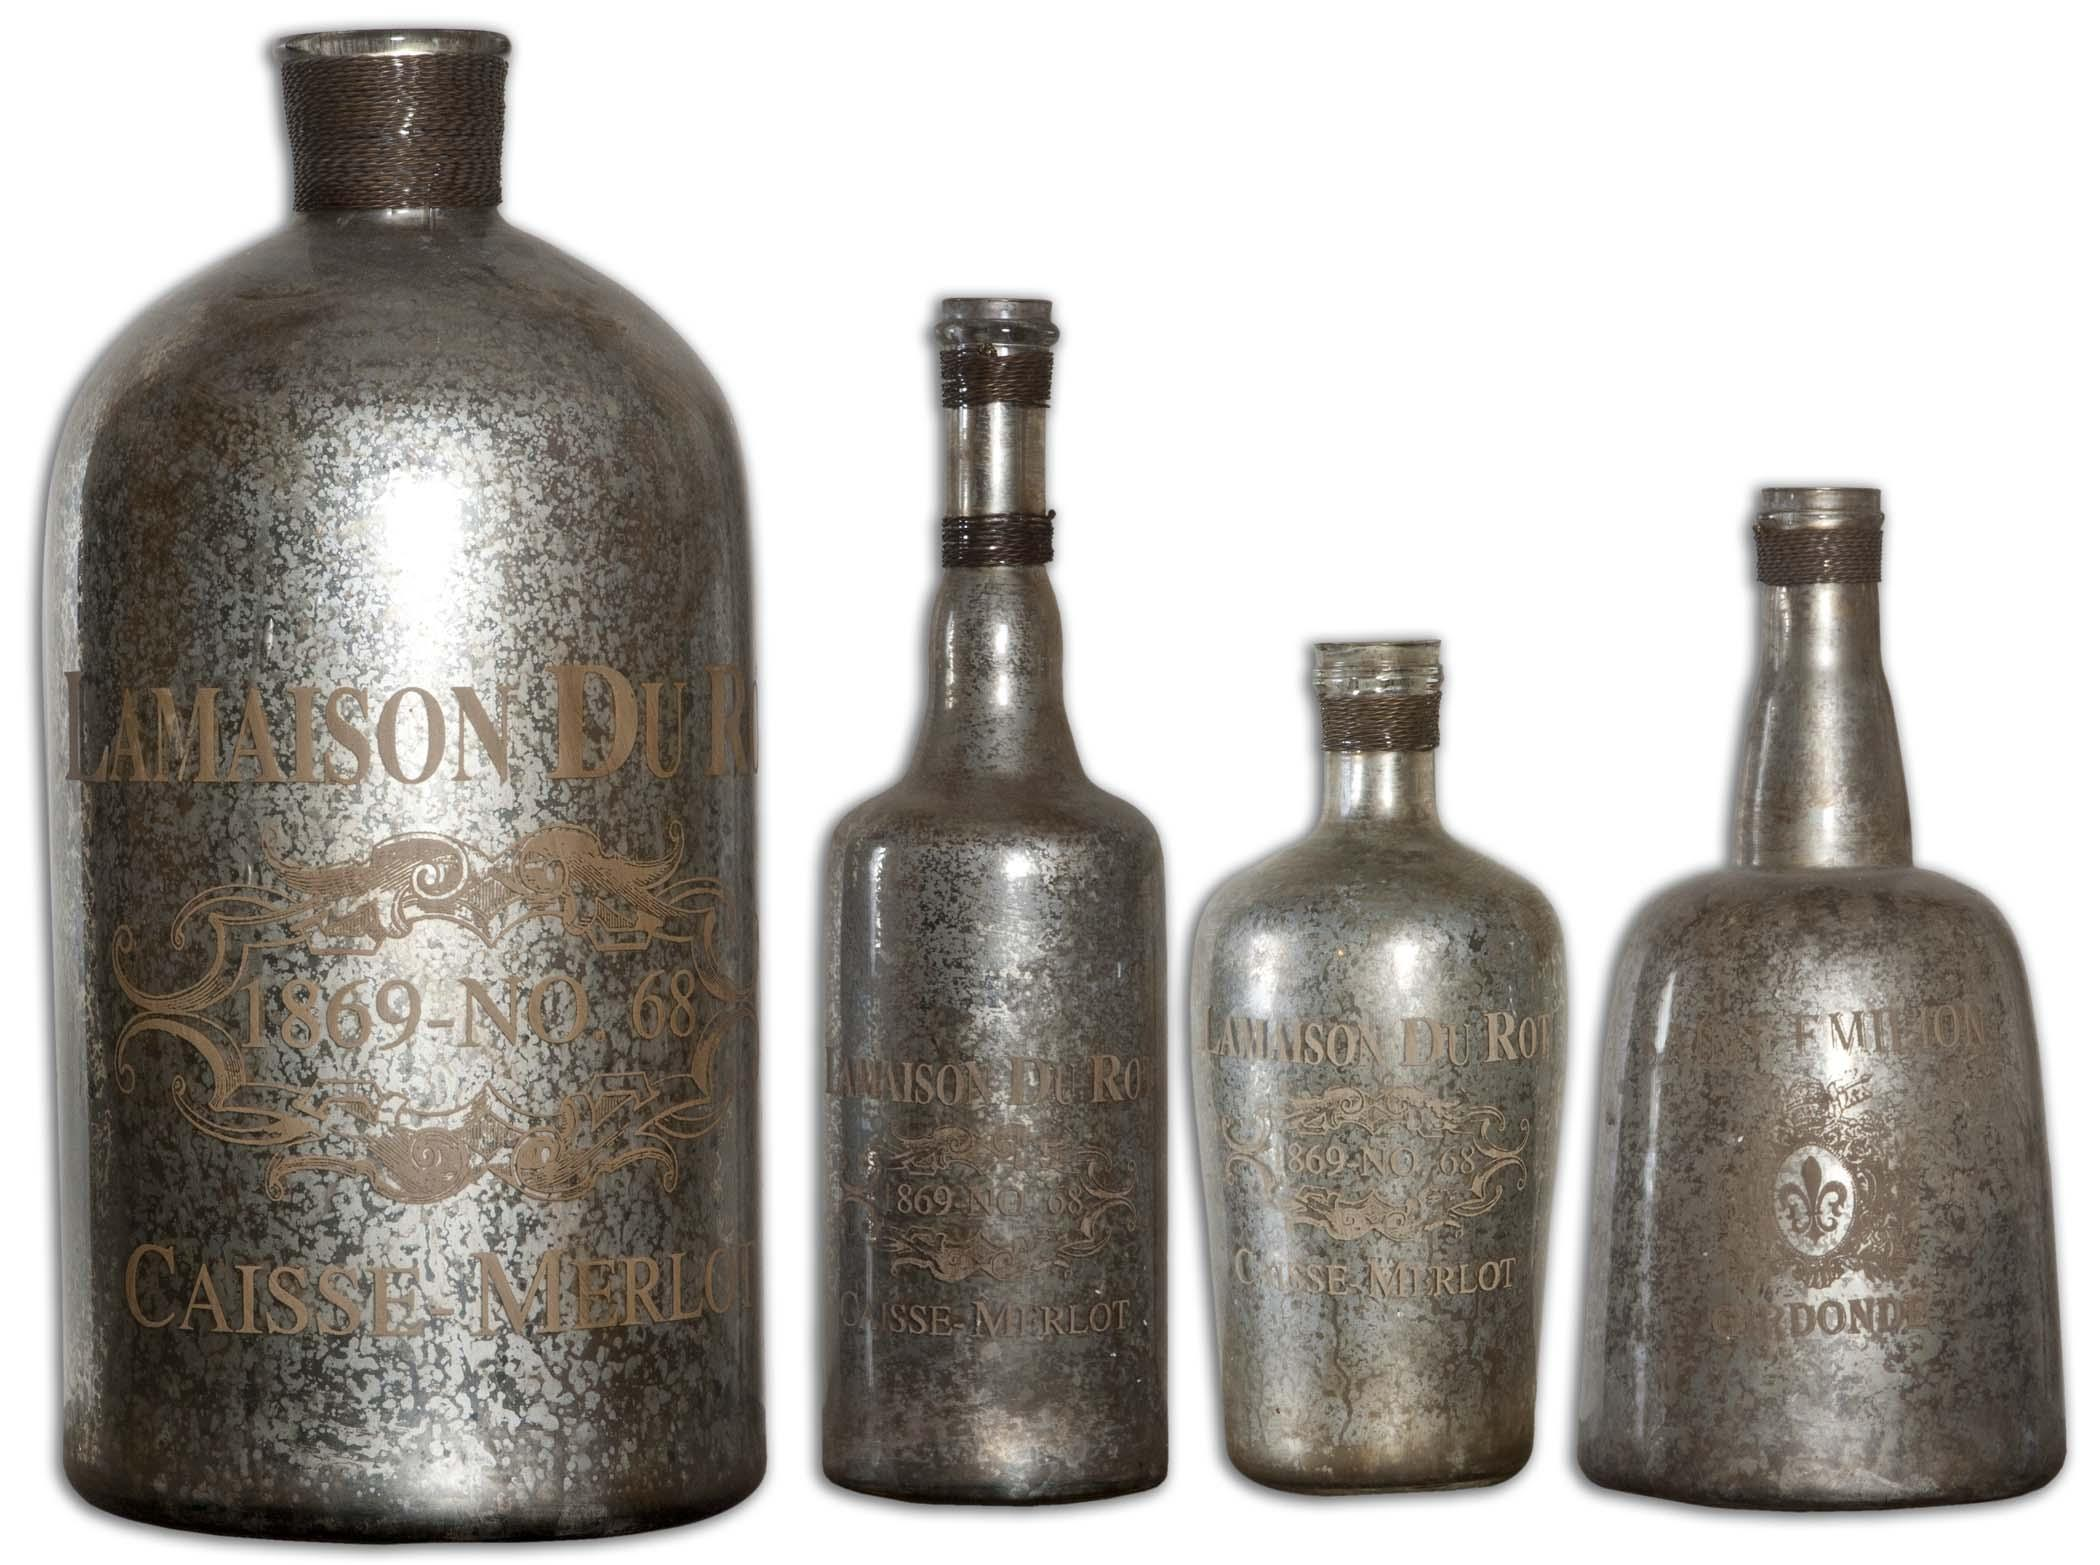 Uttermost Accessories Lamaison Mercury Glass Bottle Large - Item Number: 19752